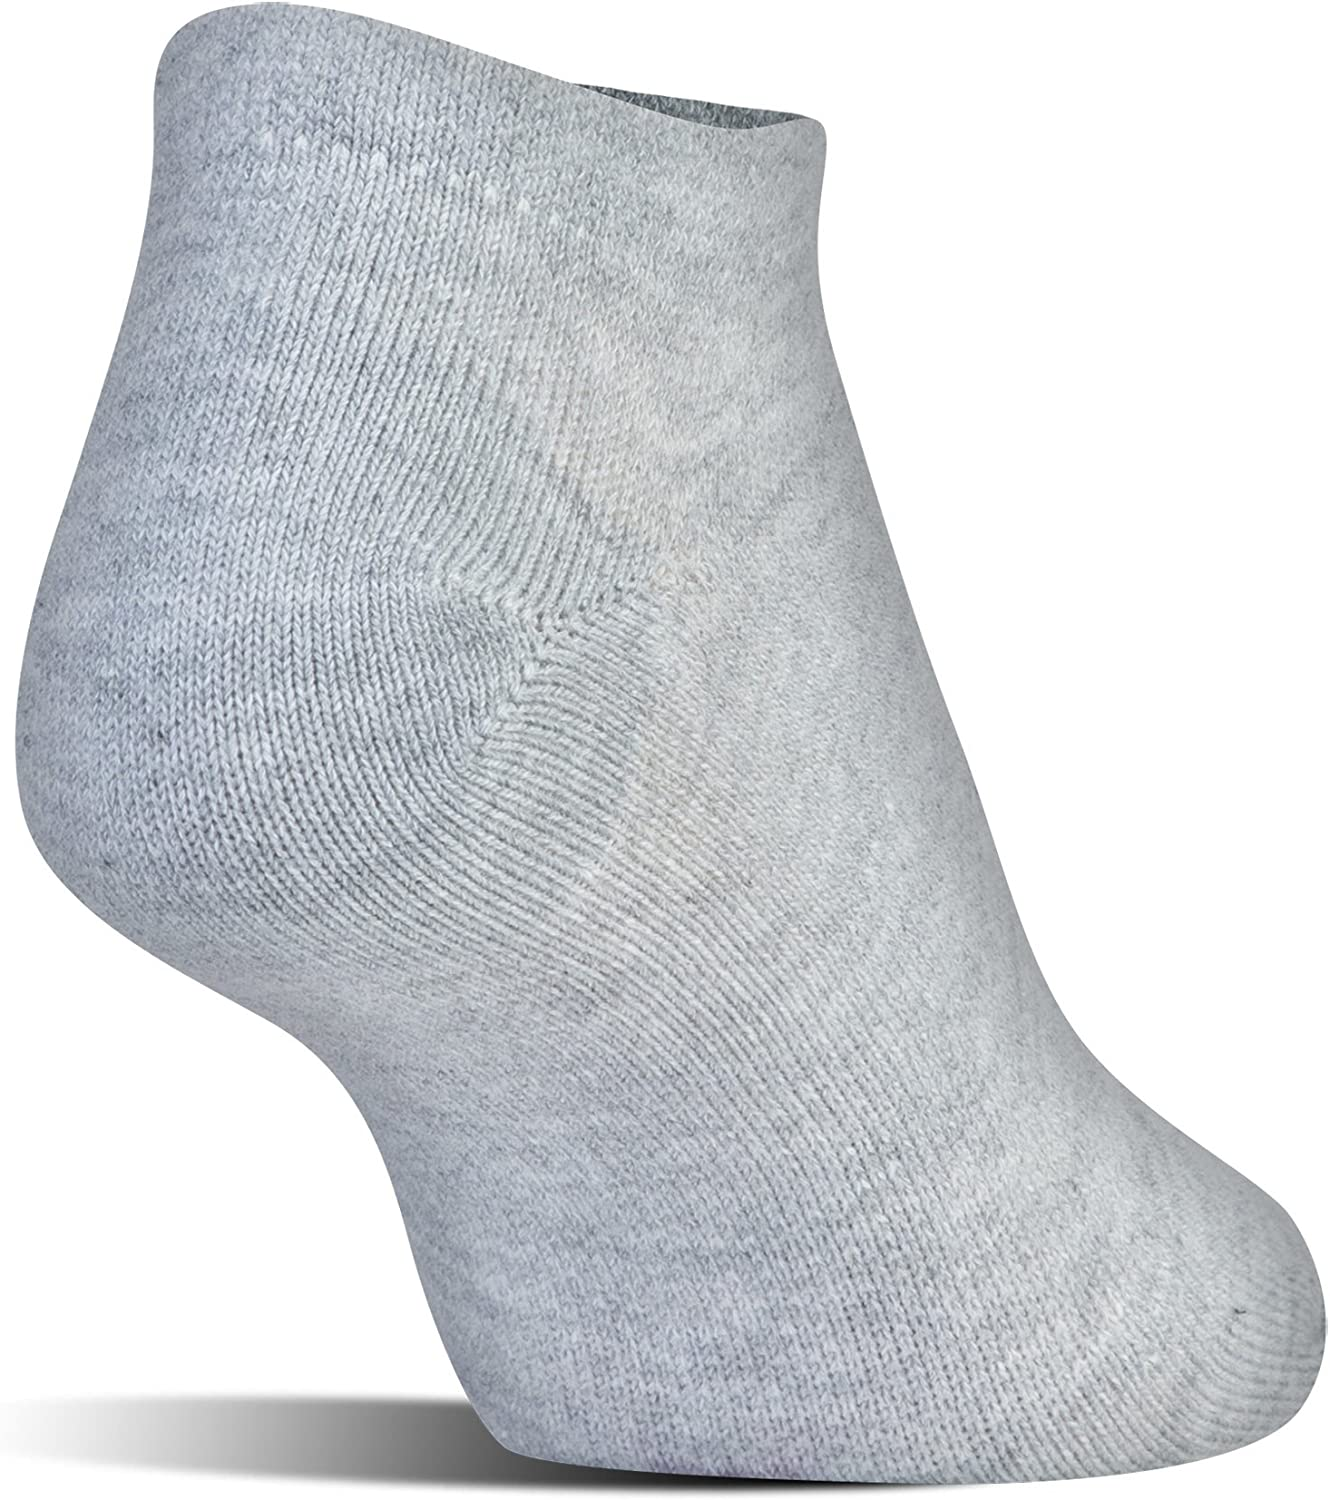 Under Armour Womens Ua Solid No Show Socks Pack of 6